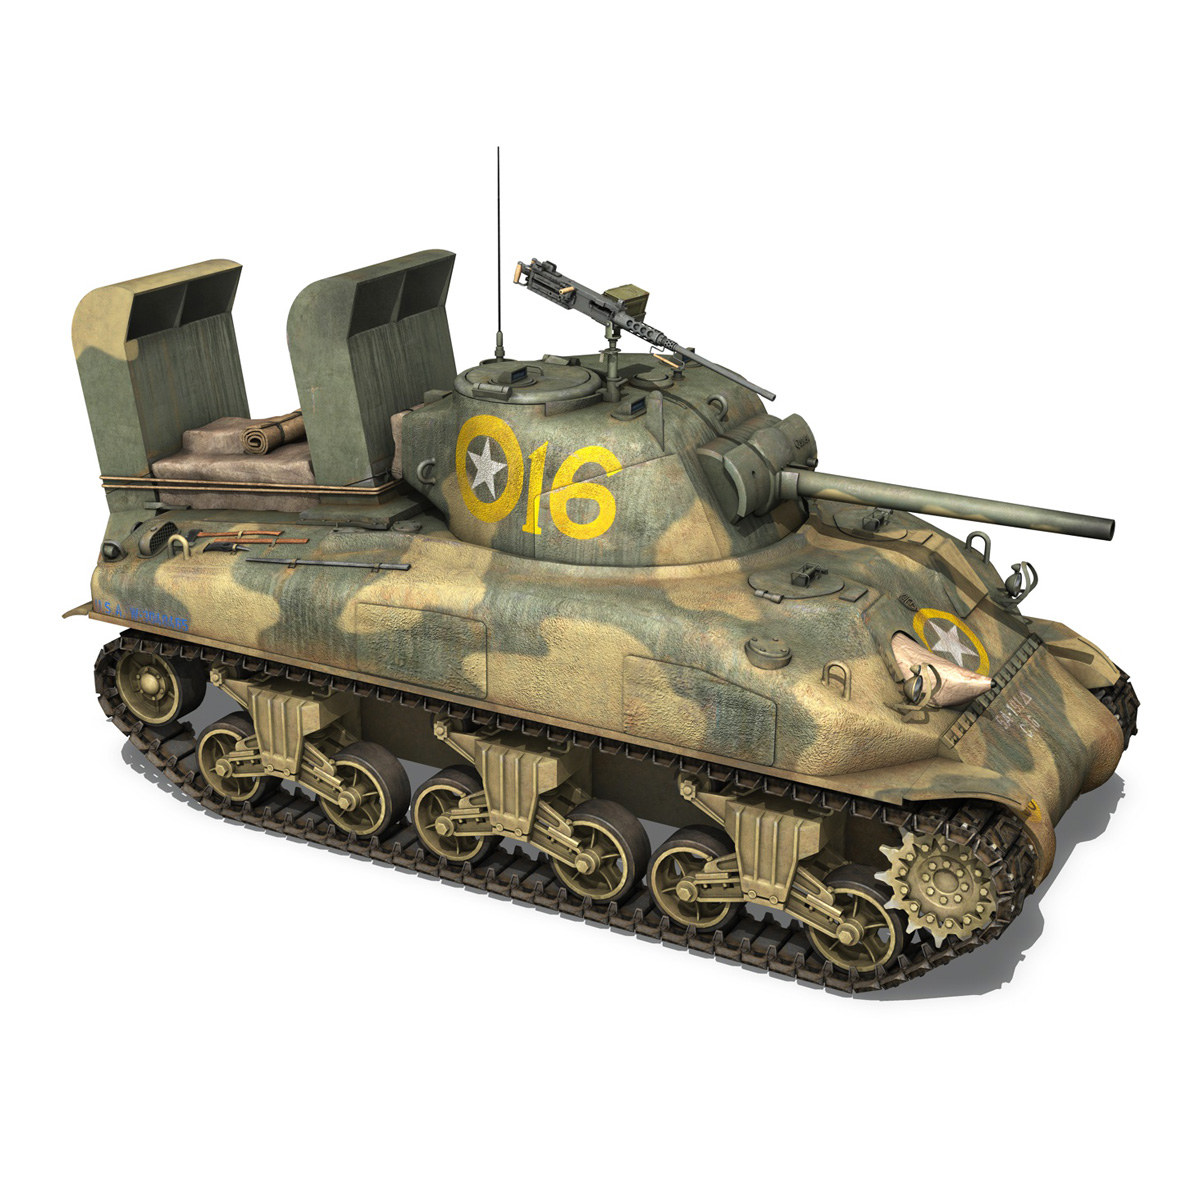 m4a1 sherman – 16 3d model 3ds fbx c4d lwo obj 273056